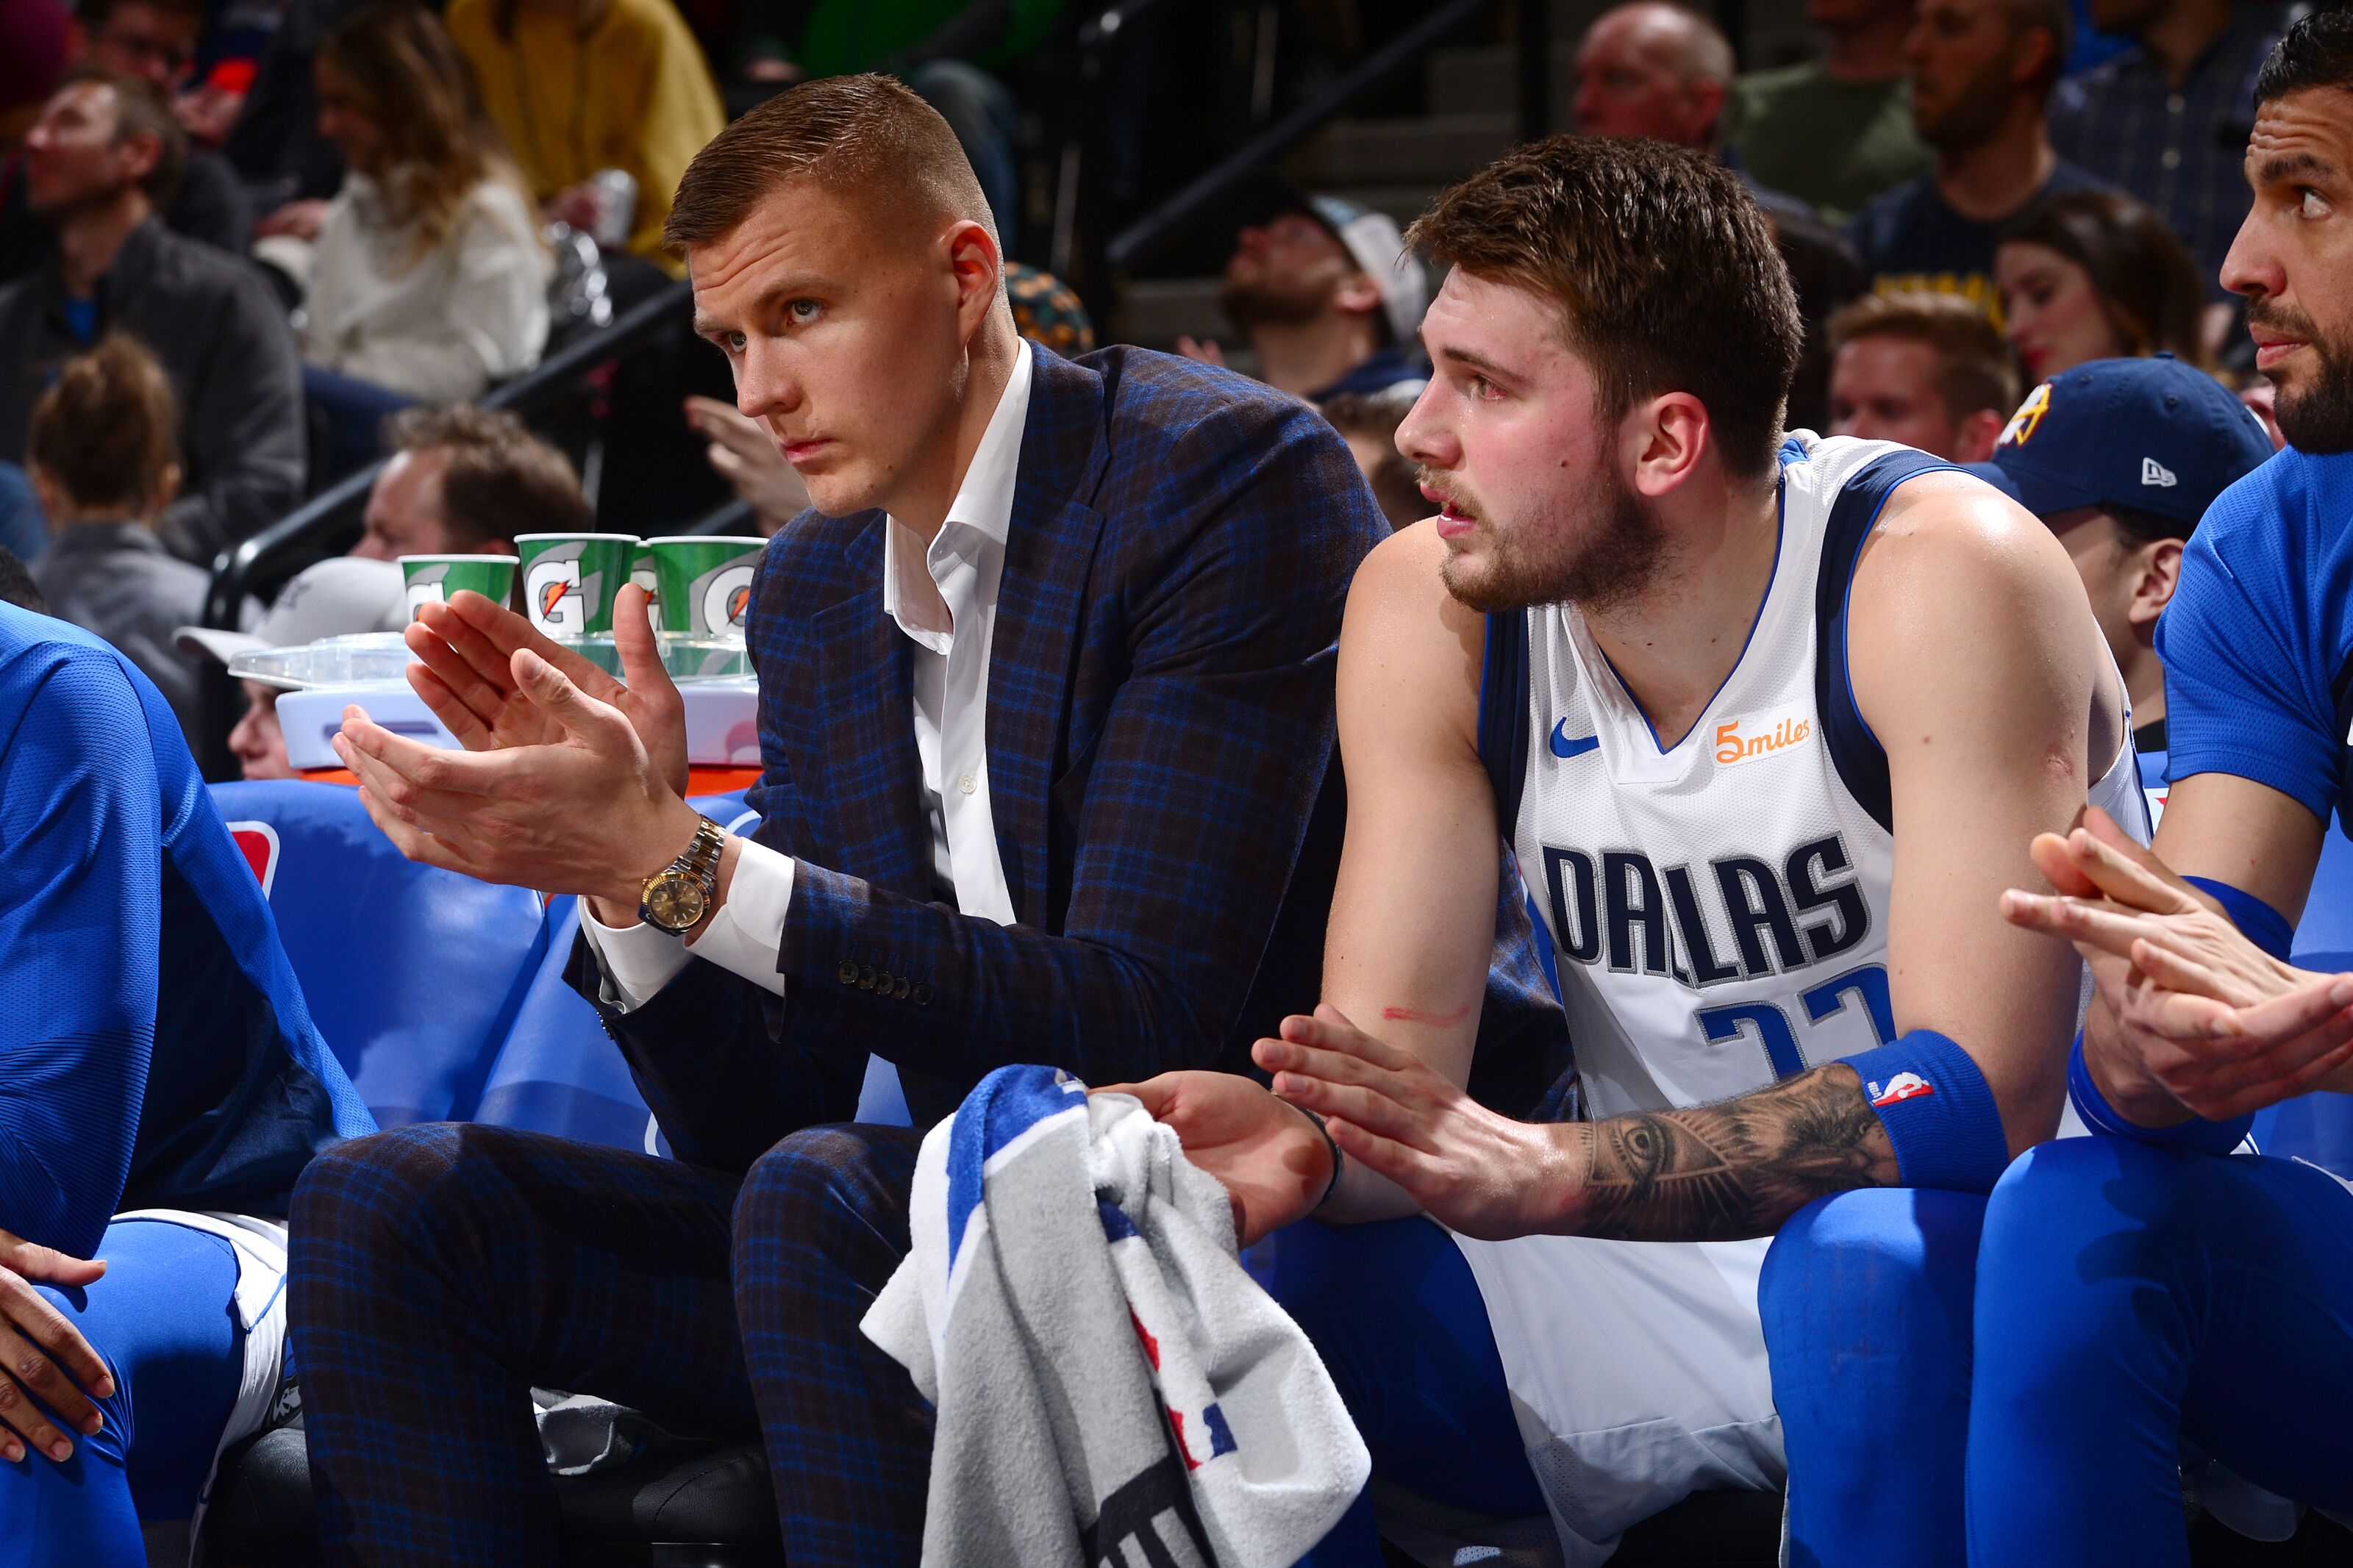 If Kristaps Porzingis is healthy, what are reasonable expectations for the Mavericks?